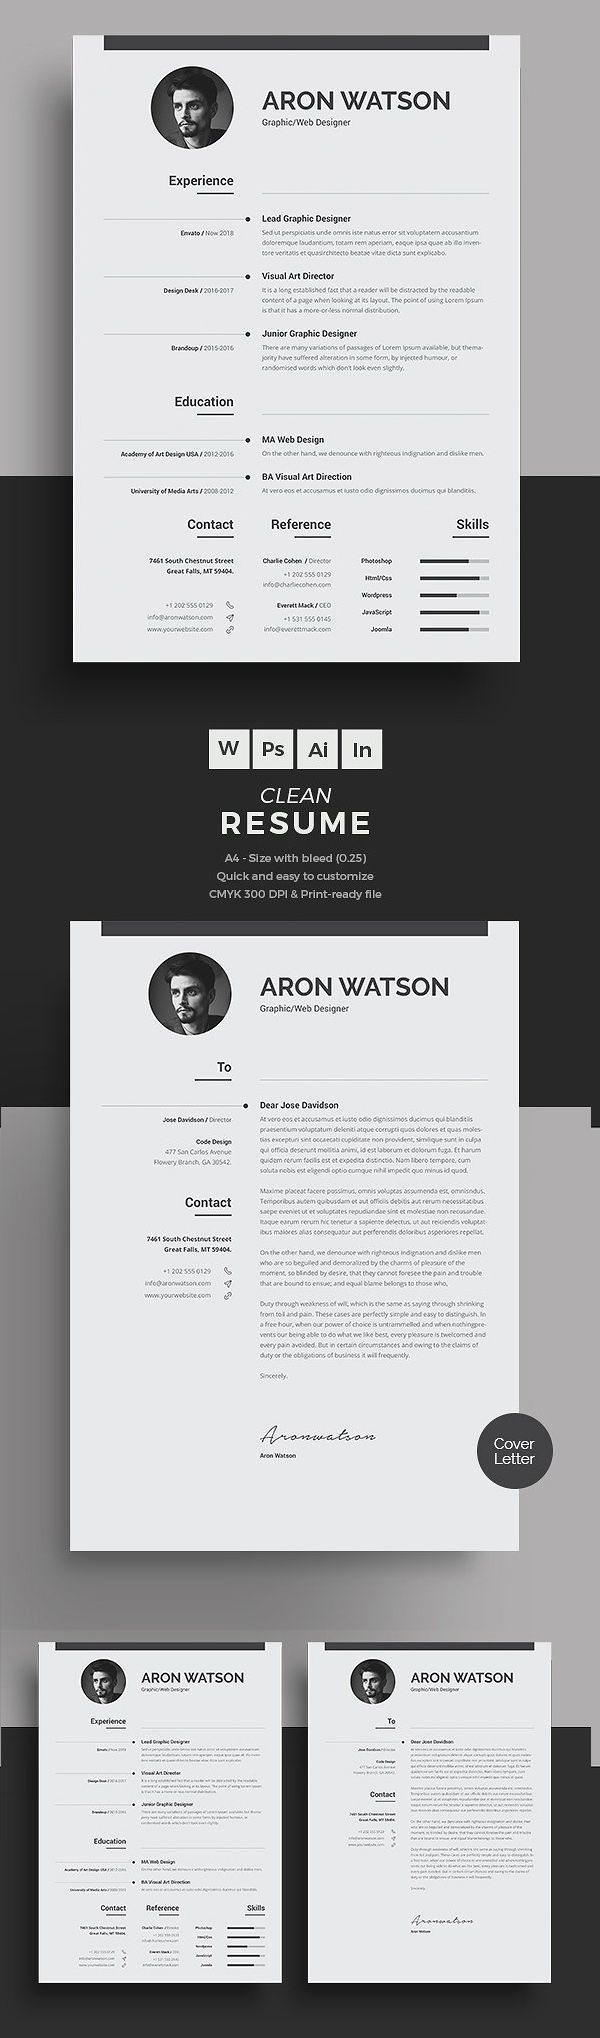 127 best GraphicArt - Layout - Resume images on Pinterest | Page ...